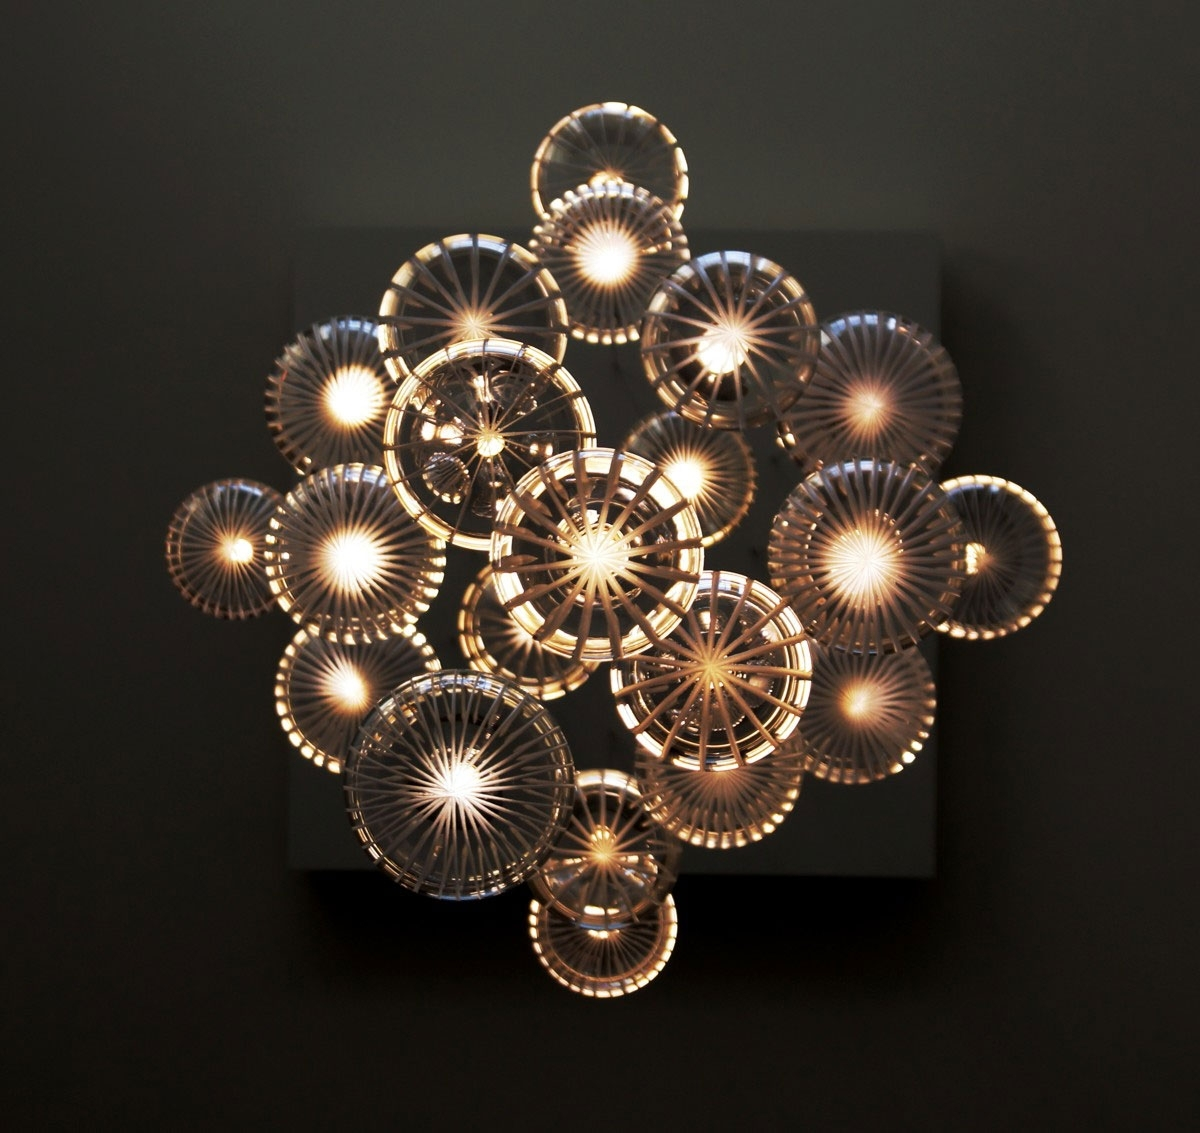 2018 Contemporary Chandeliers Toronto On With Hd Resolution 1200X1133 Intended For Contemporary Chandeliers (View 1 of 15)